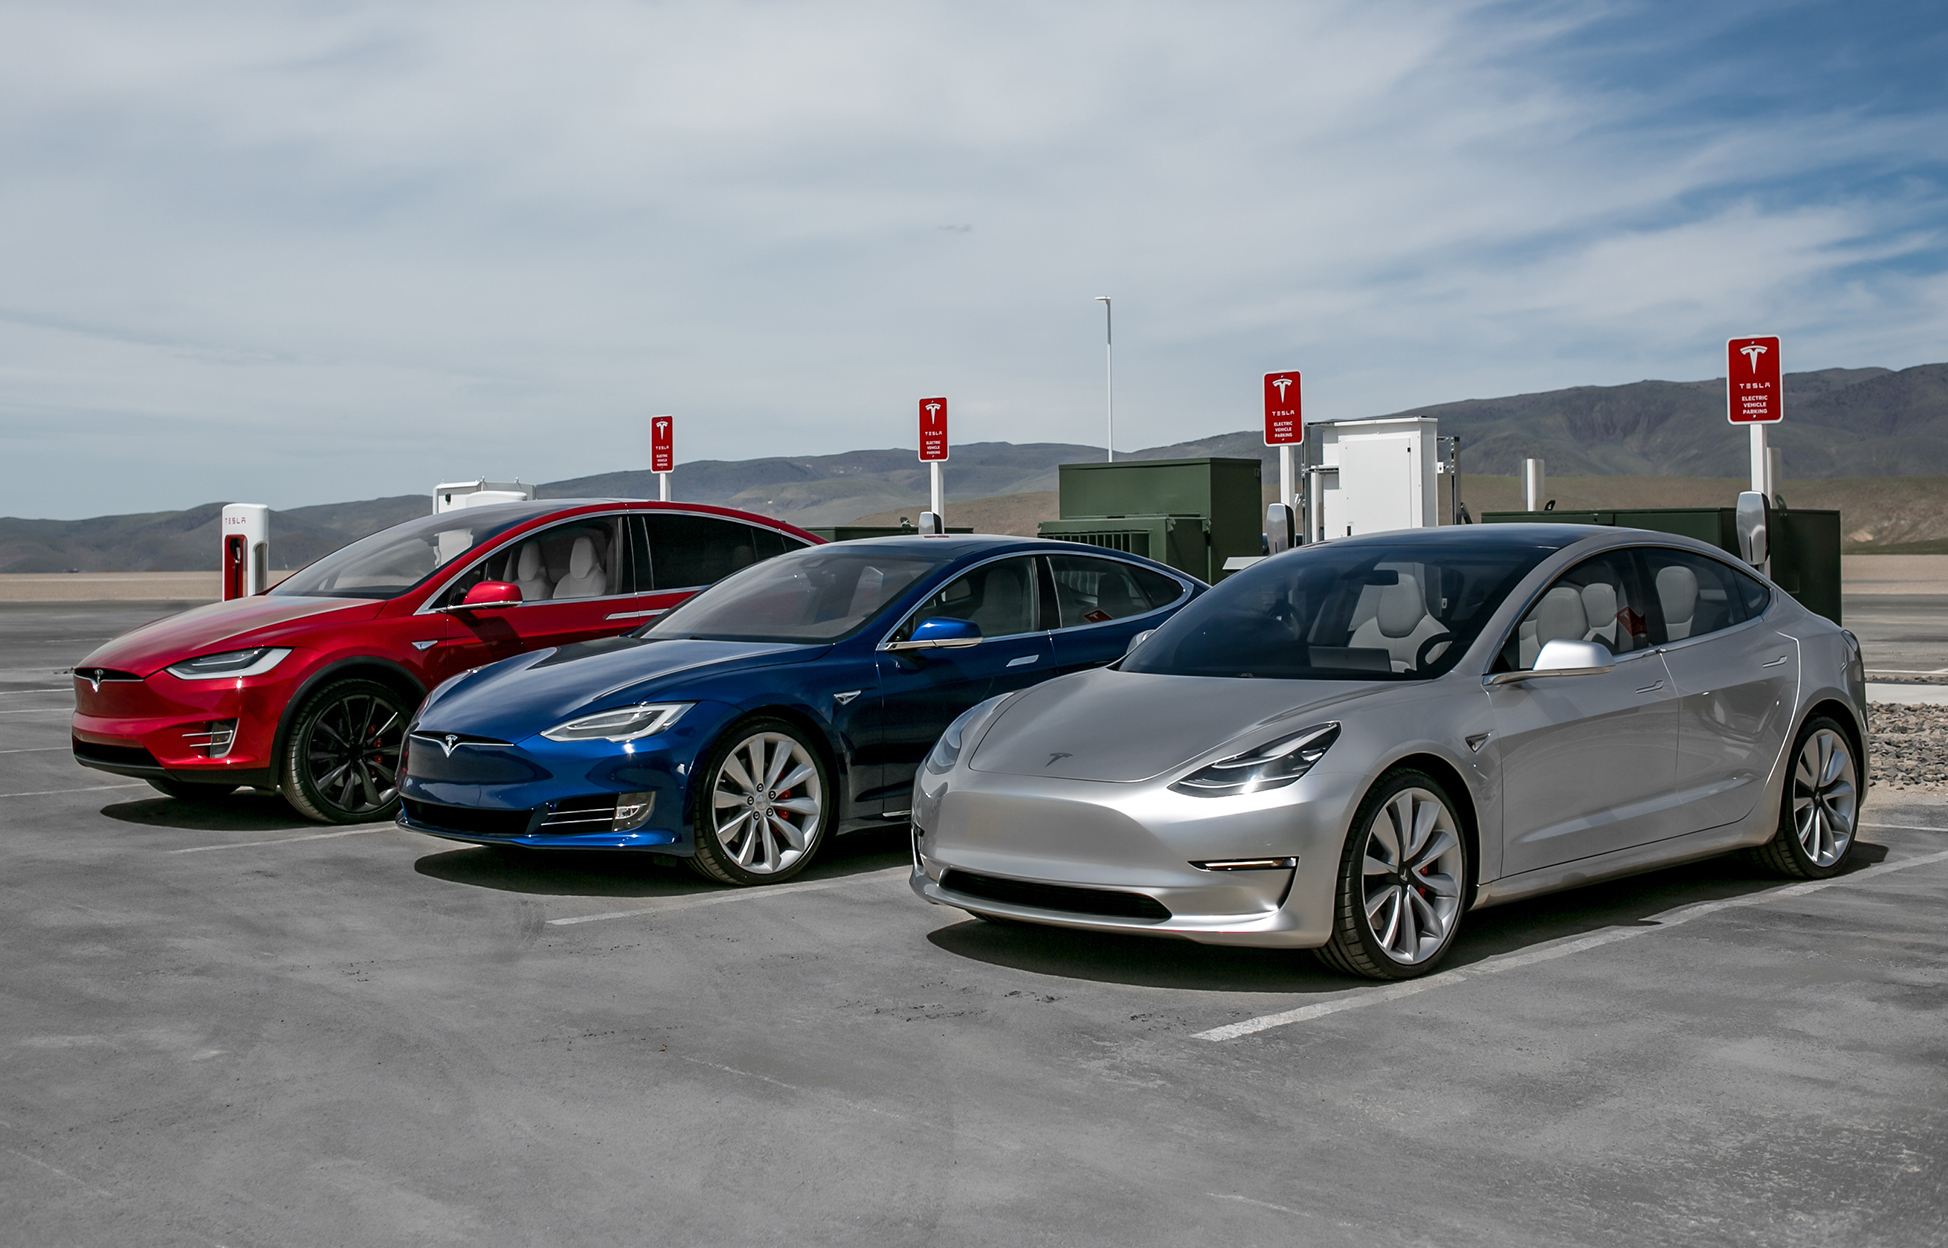 News - Don't Hold Your Breath For That Tesla Model Y